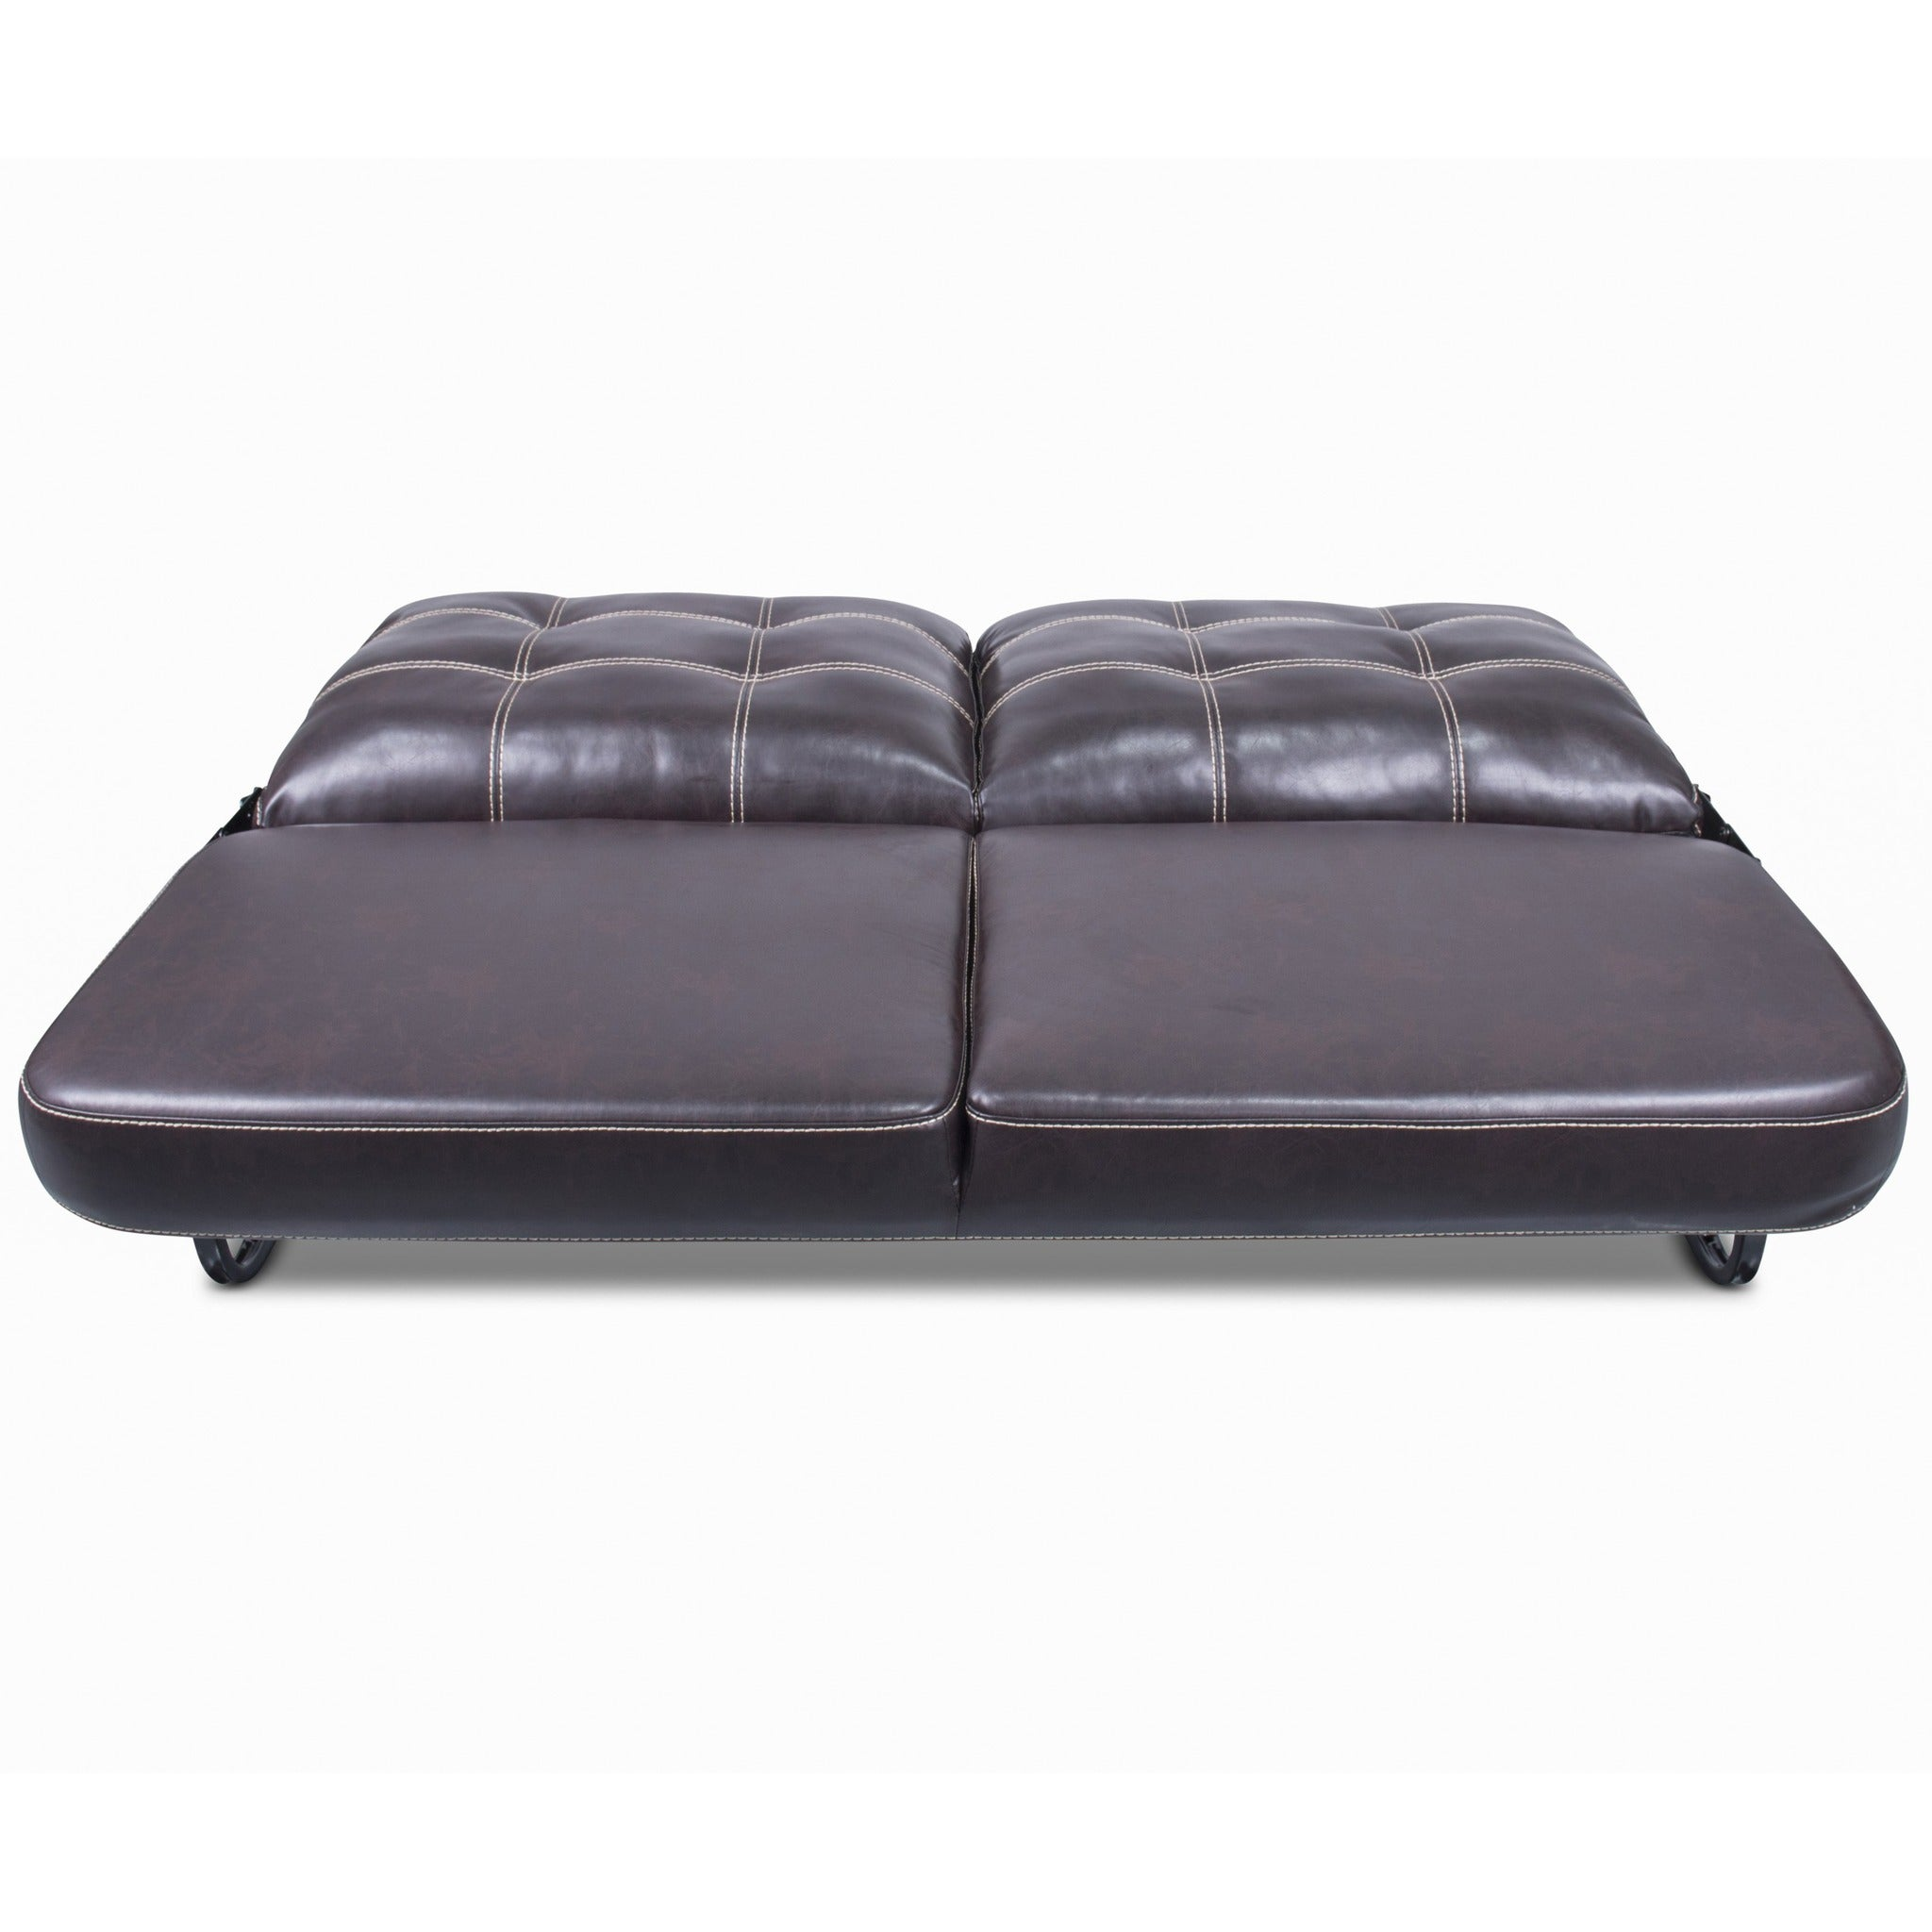 Lippert 389311 68 Jack Knife Sofa In Majestic Chocolate General